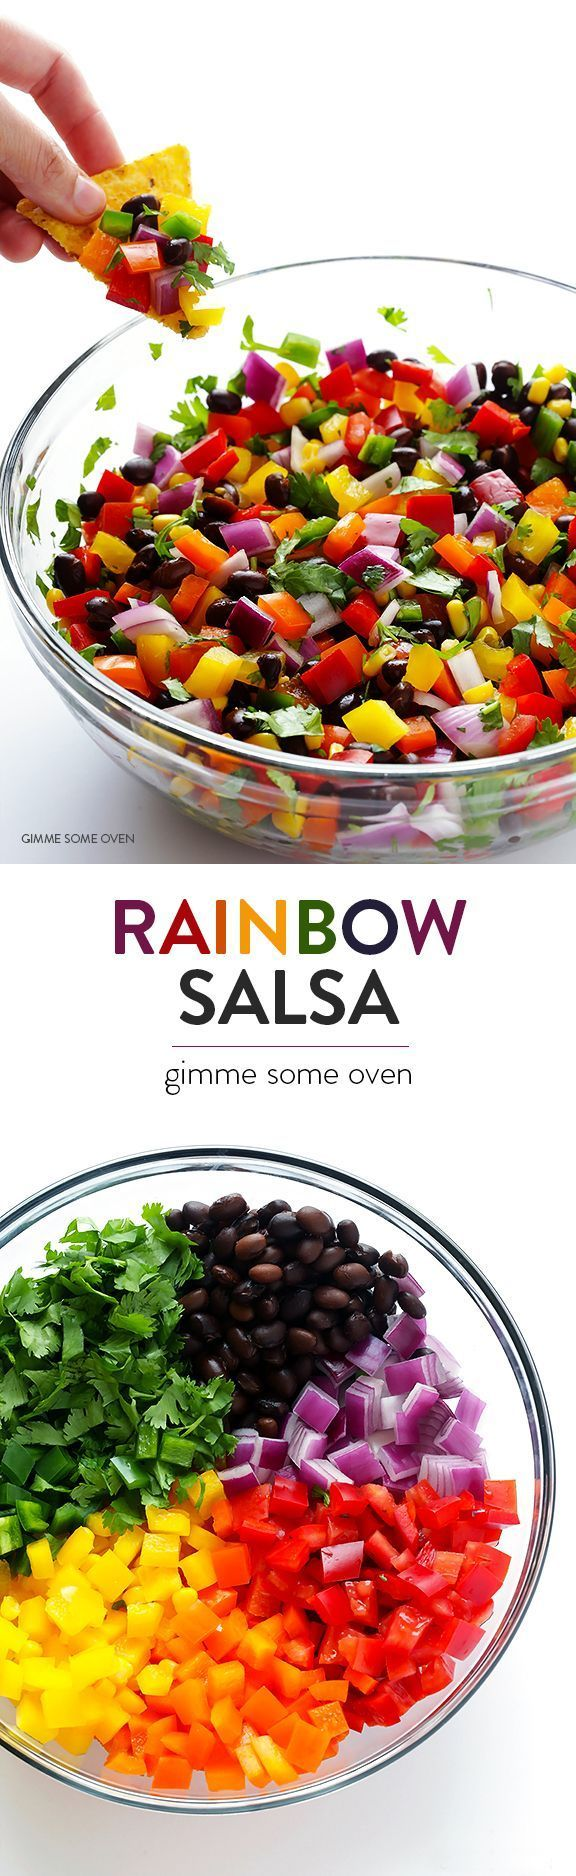 Rainbow Salsa | Gimme Some Oven